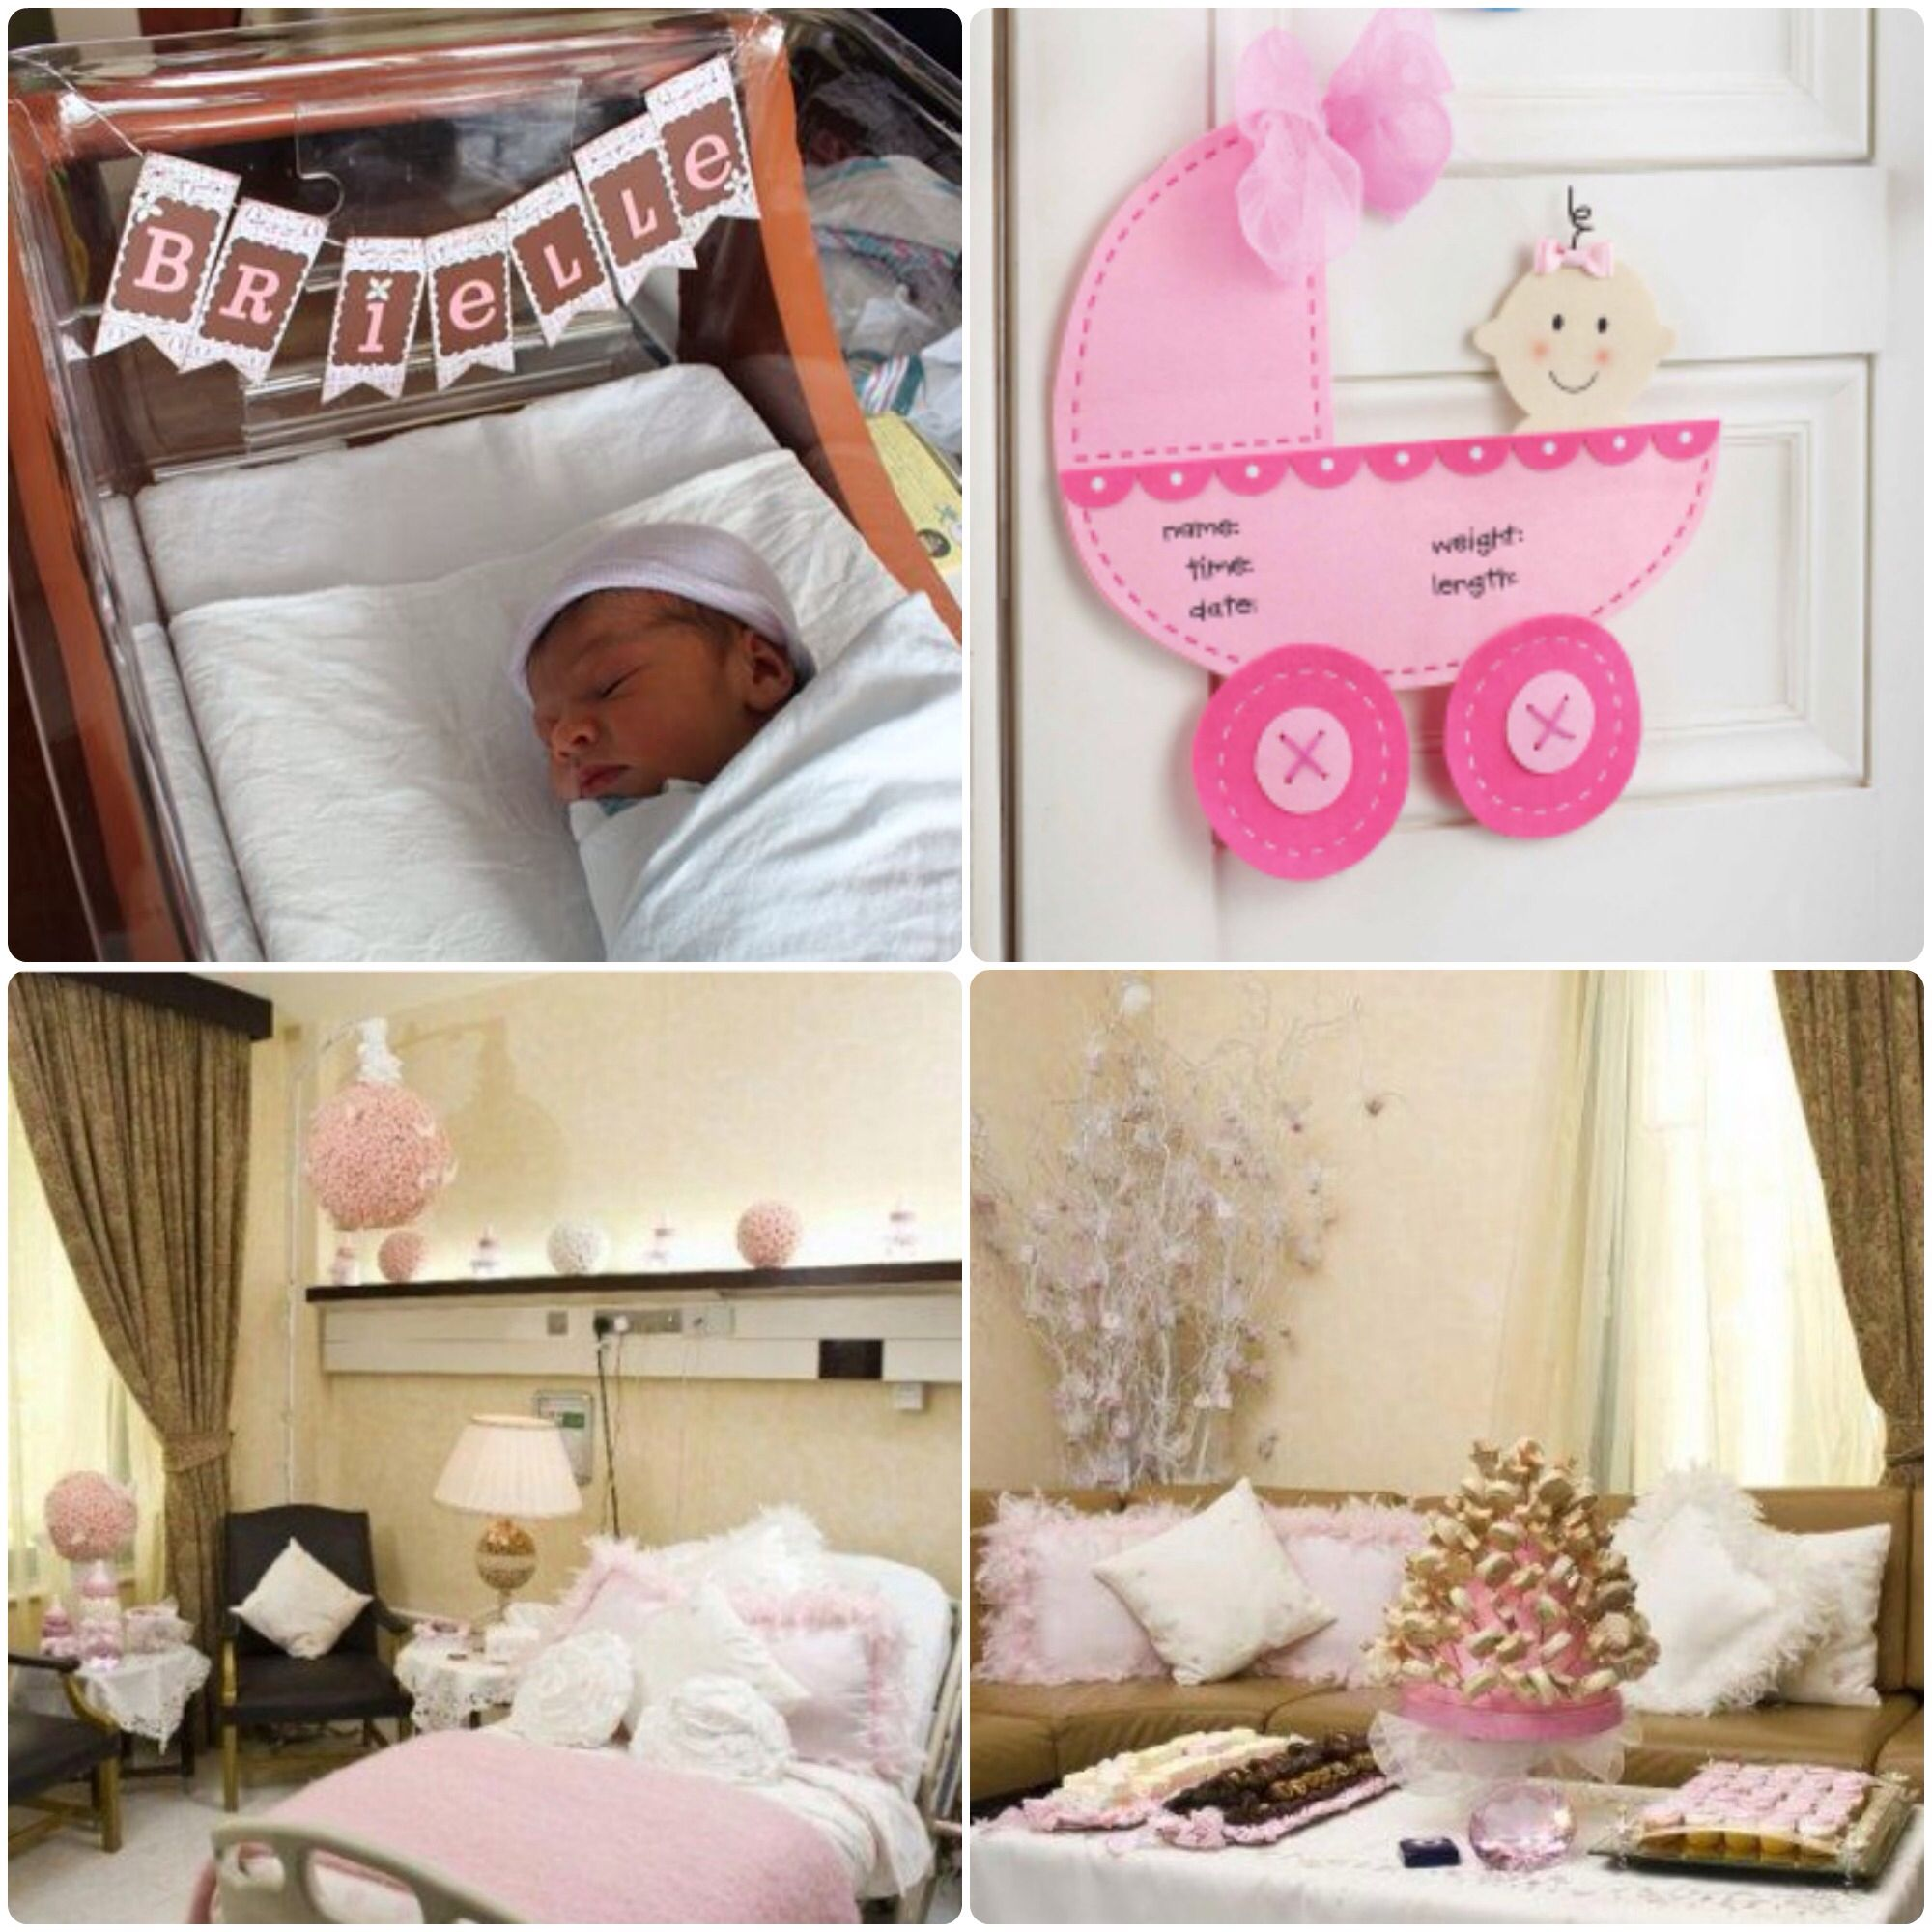 Beautiful Baby Room Decoration In 2020 Baby Room Decor Welcome